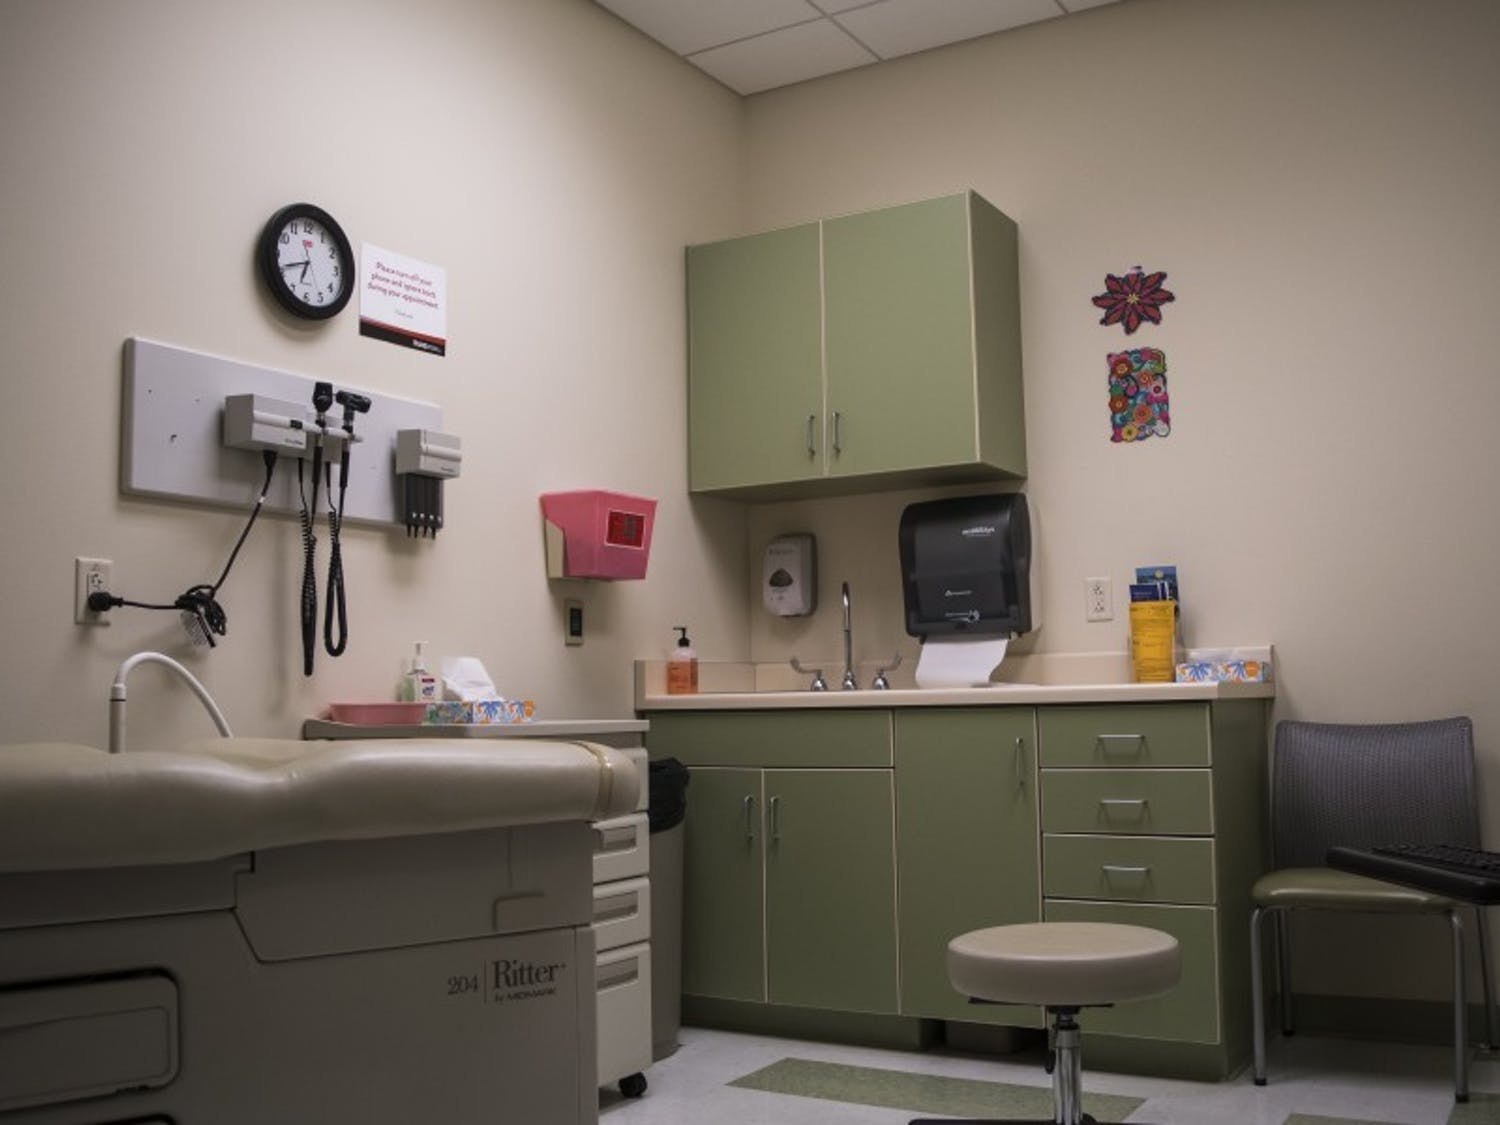 UW-Madison's Sexual Health Clinic is located on the 6th floor of the Student Activity Center.